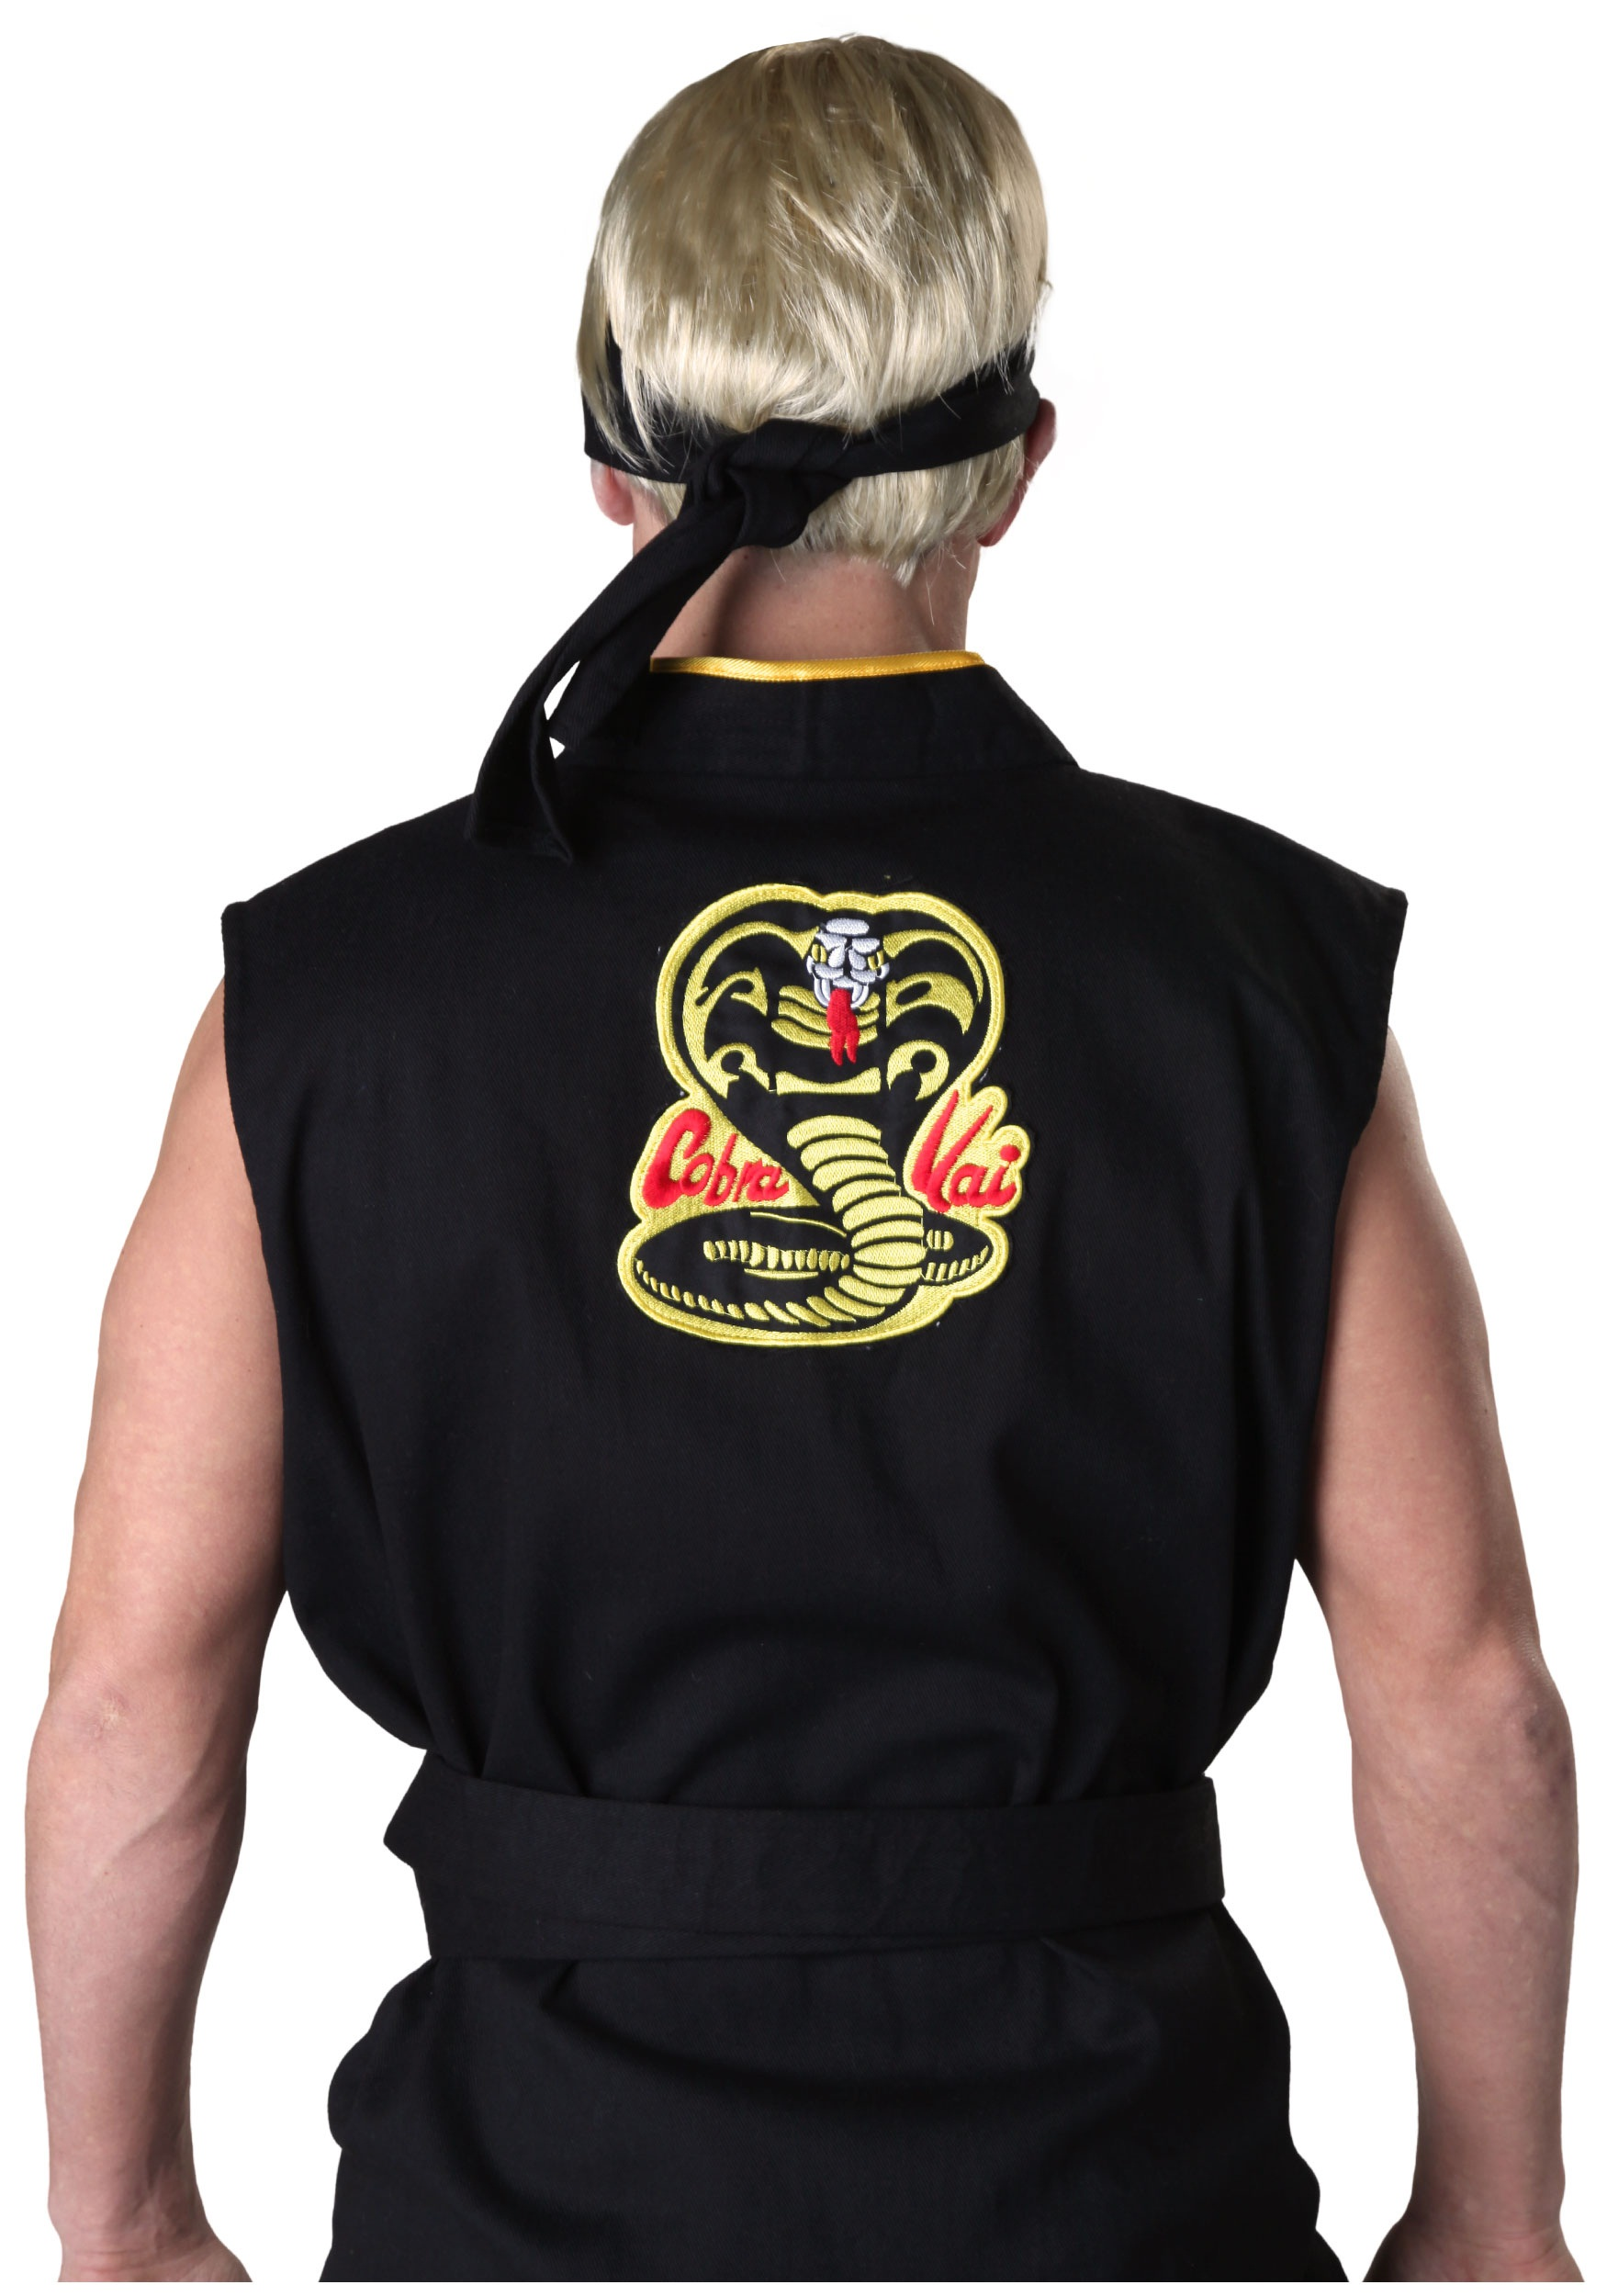 how to watch cobra kai in au